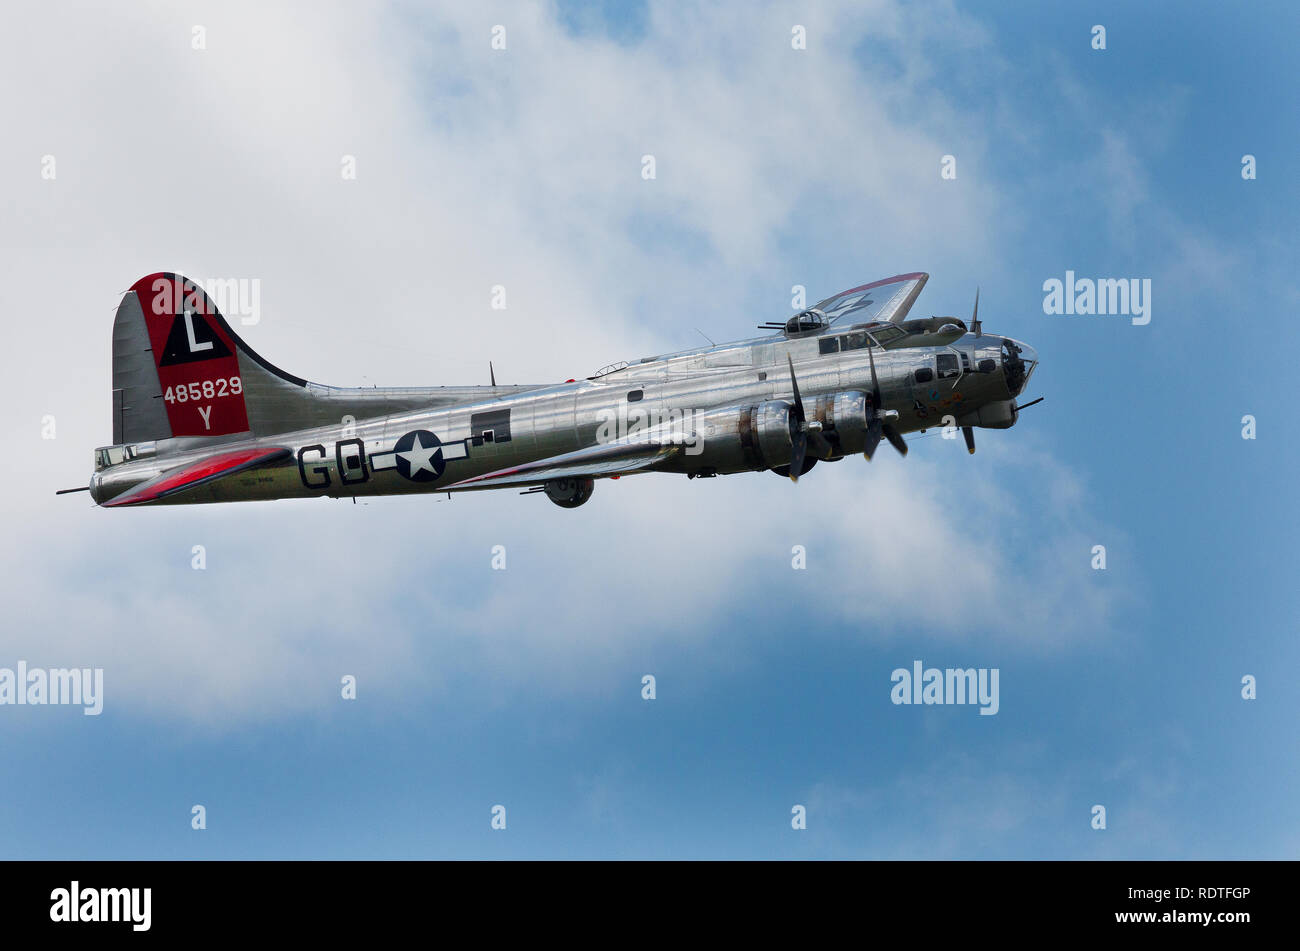 Boeing B-17 Flying Fortress the Army Air Corp bomberof World War II flying in a air show Stock Photo